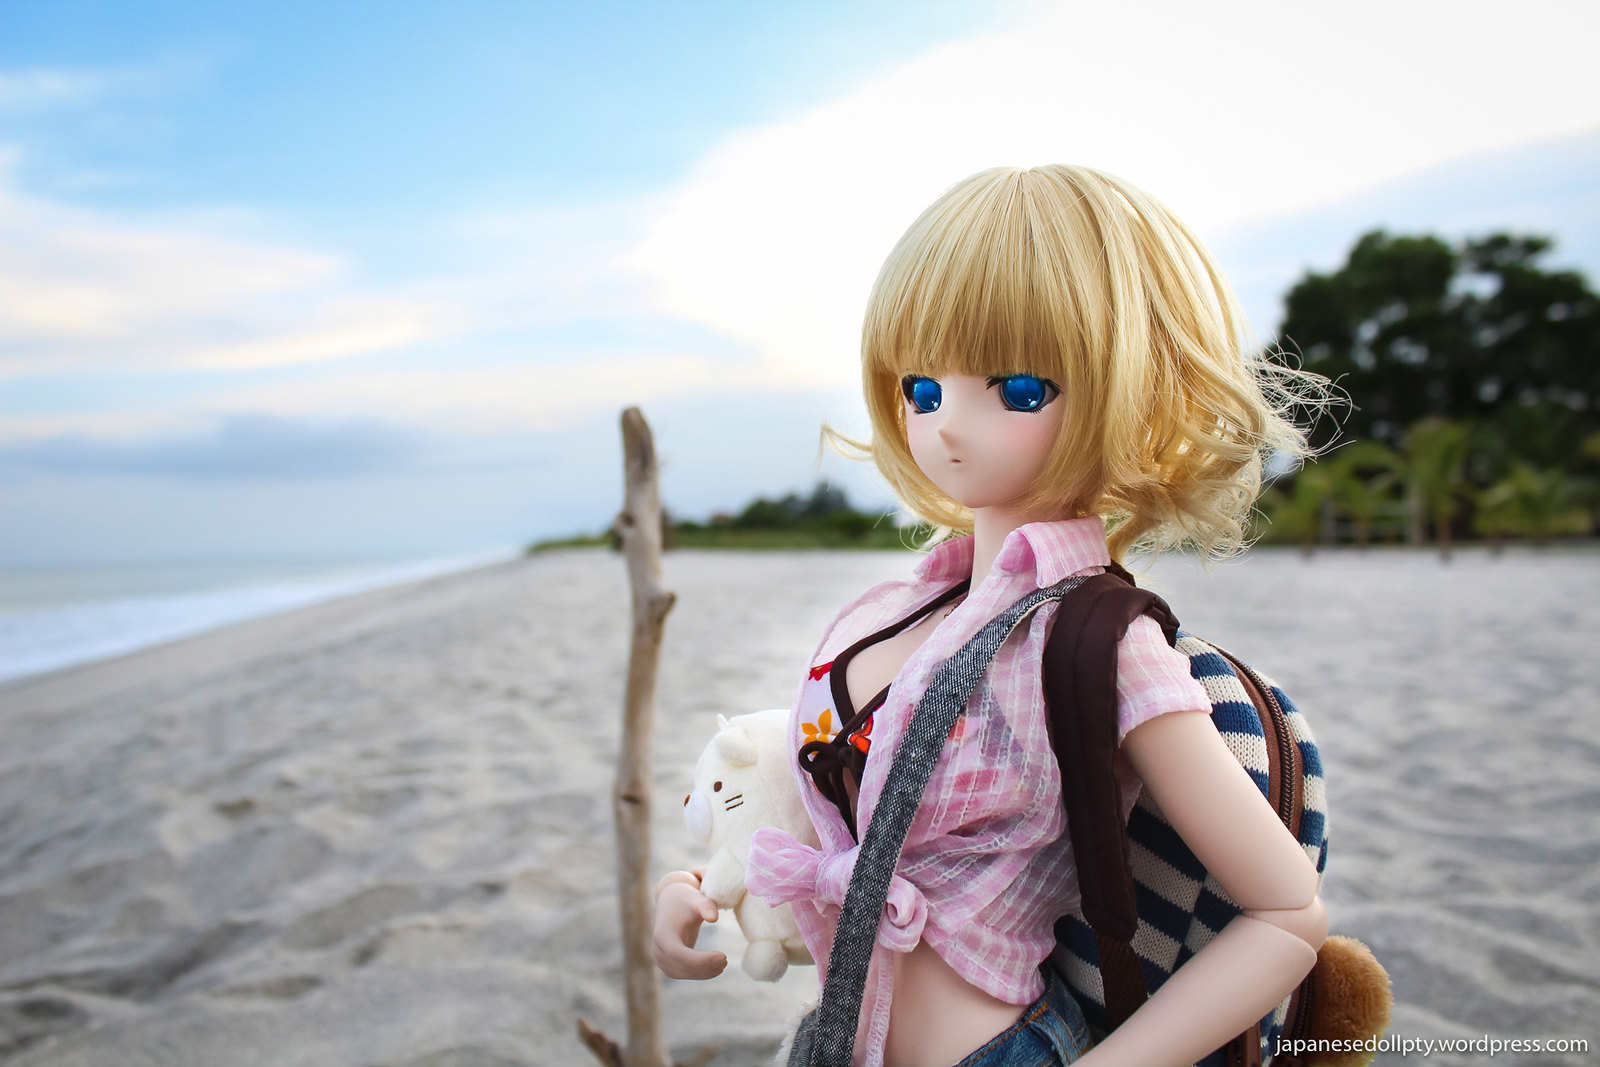 Sasara in the Beach